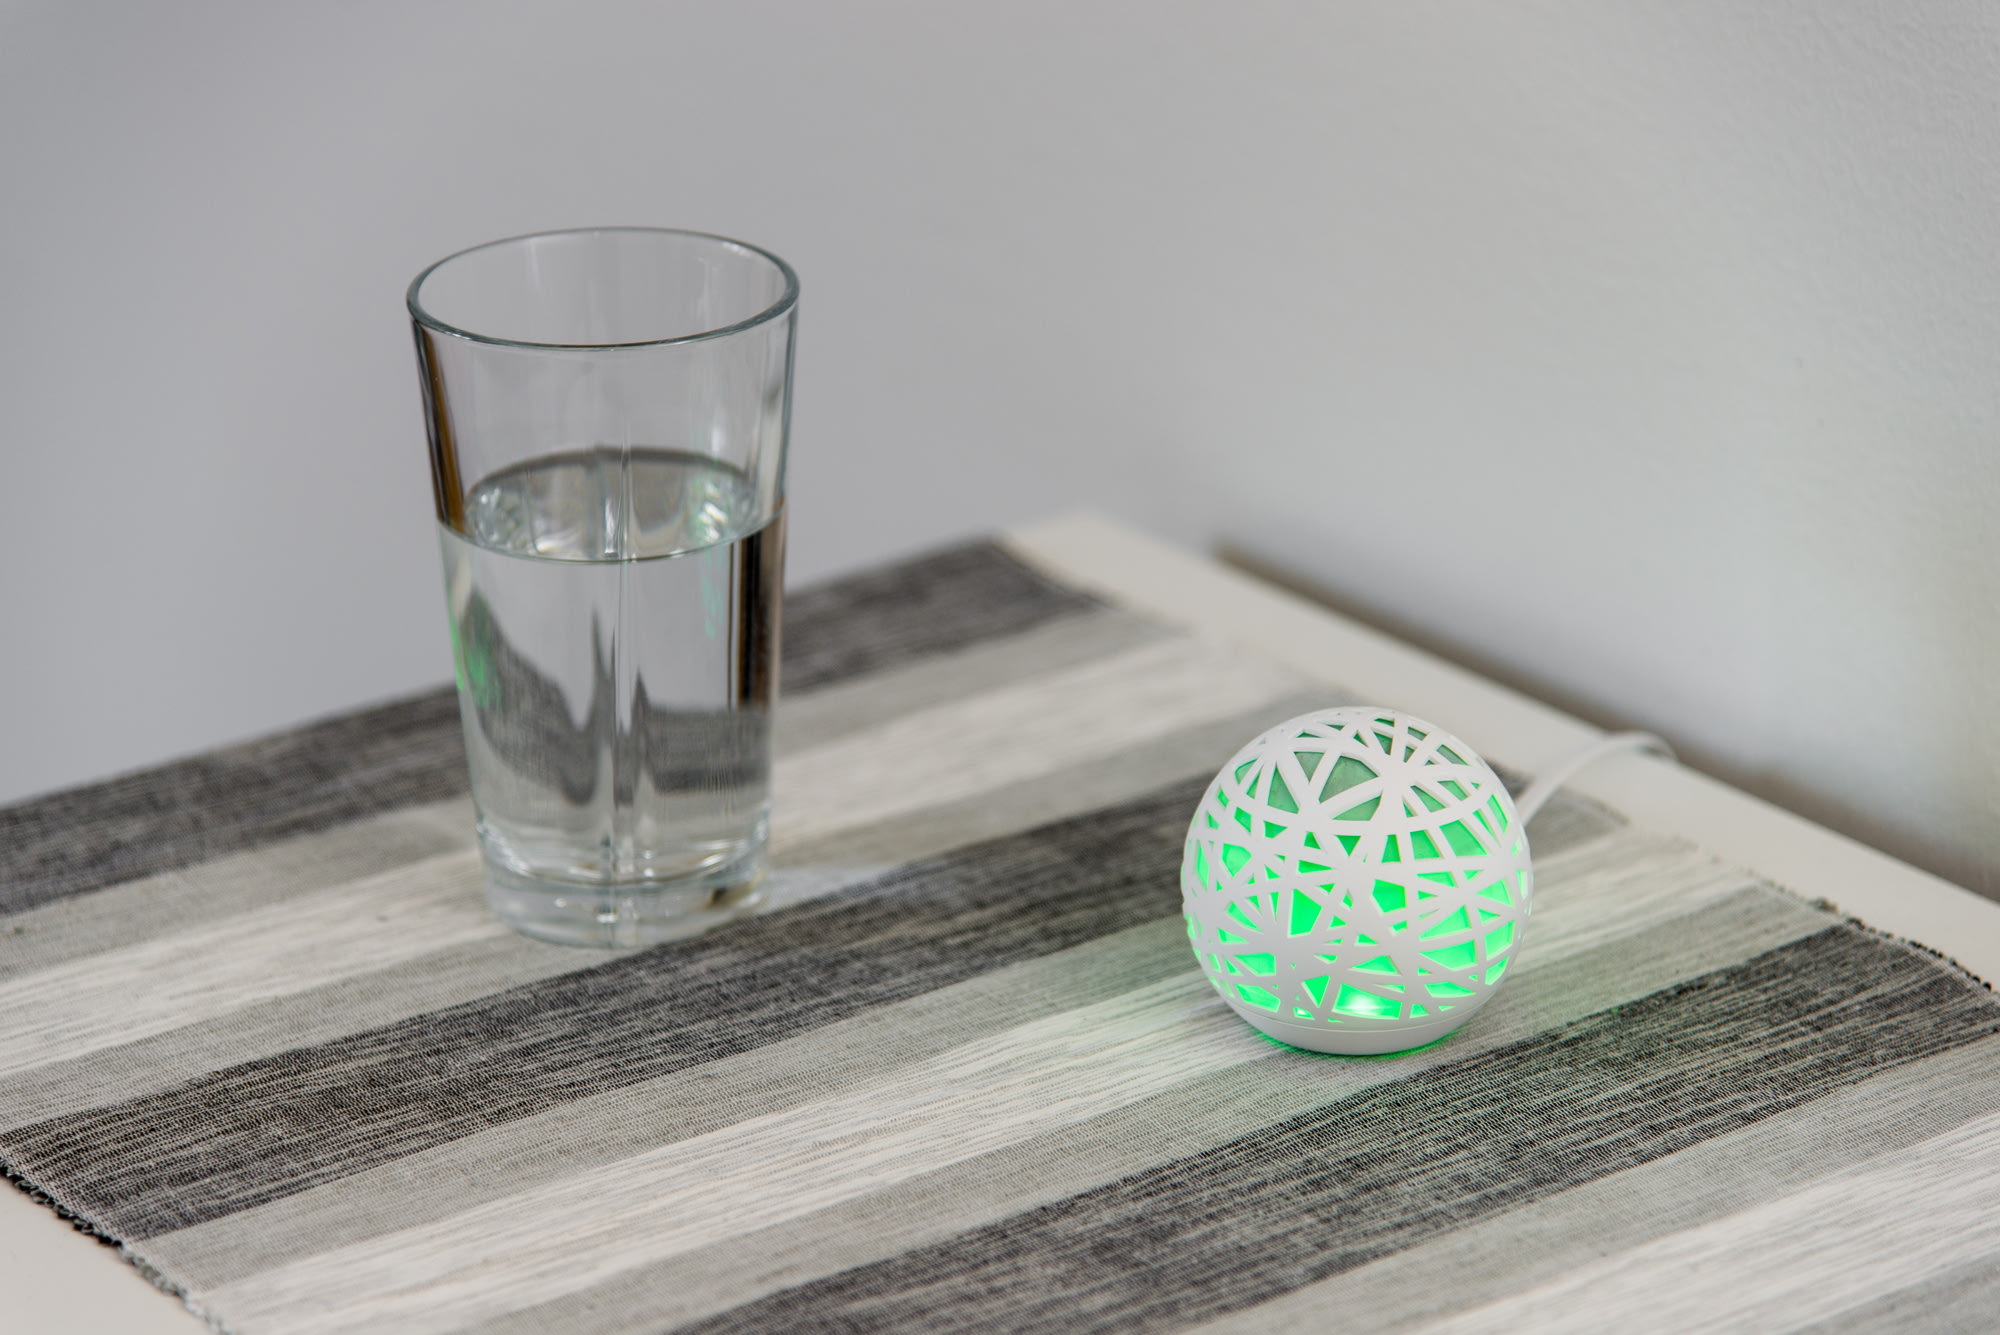 Sense sleep tracker on bedside table